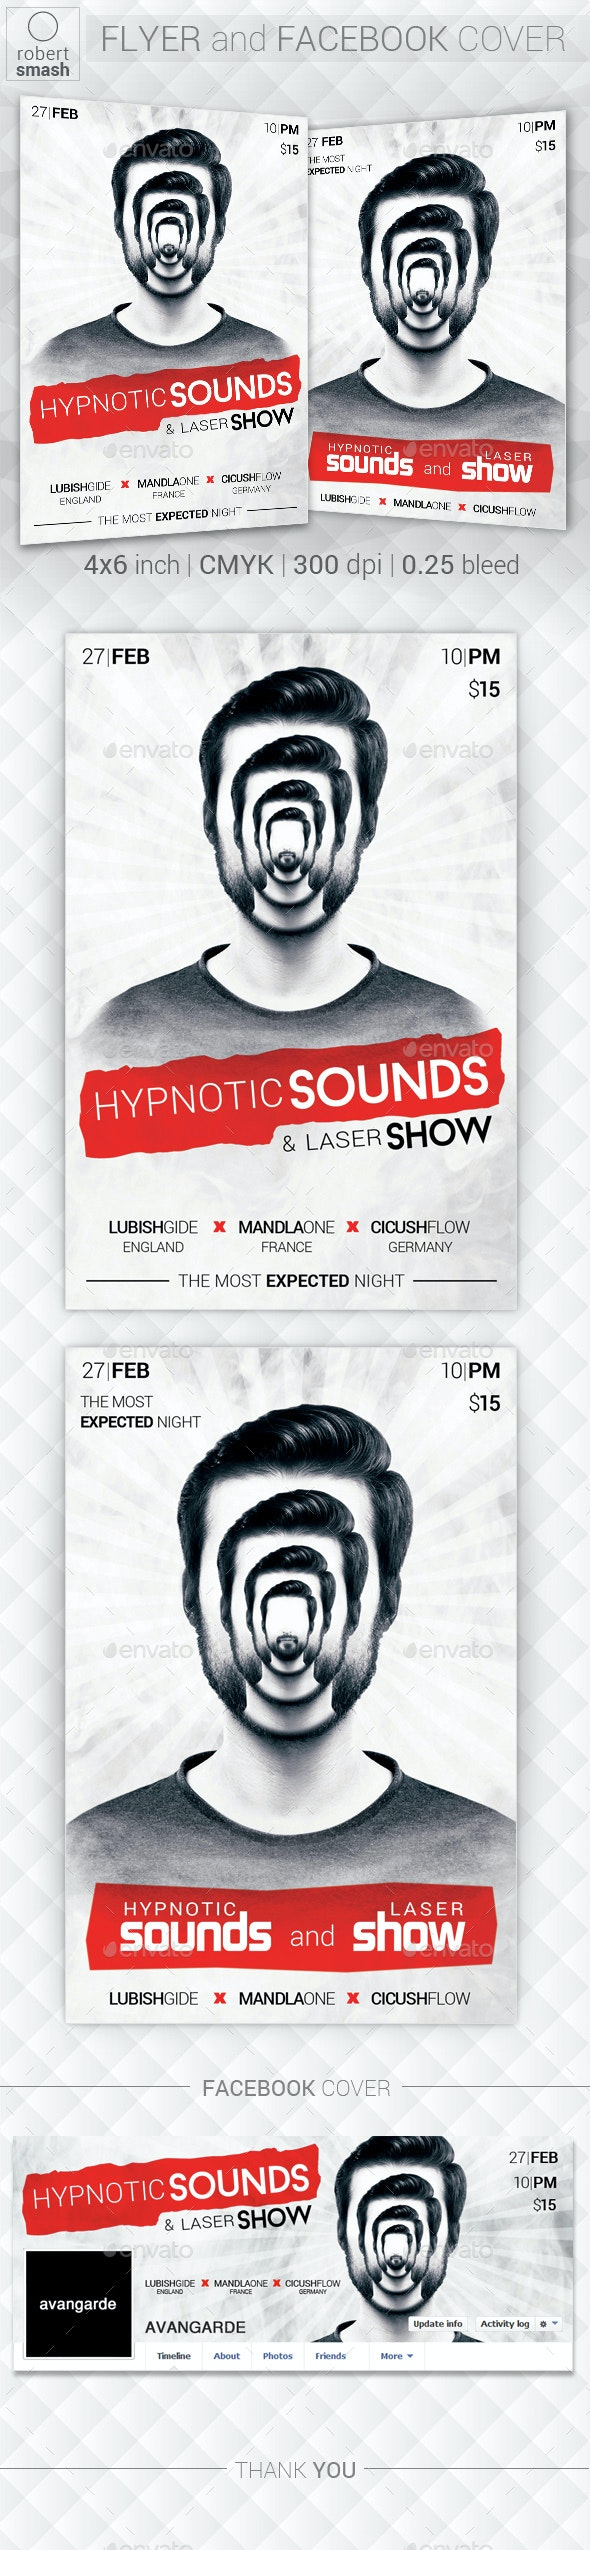 Hypnotic Sounds Flyer - Clubs & Parties Events